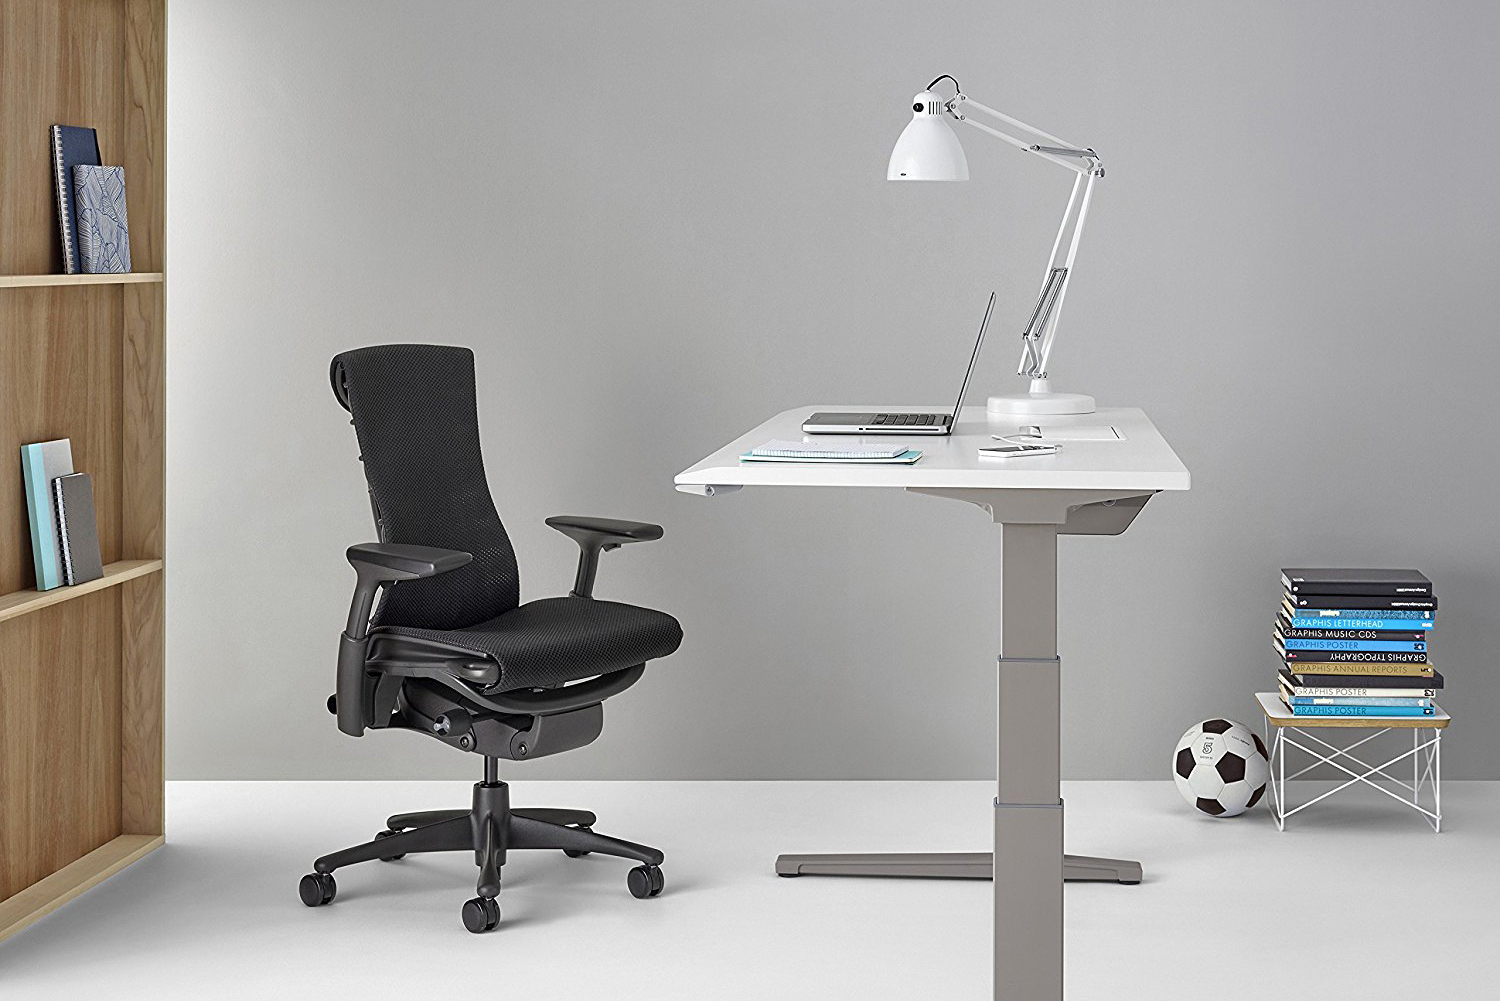 The 11 Best Office Chairs to Support You While You Work Digital